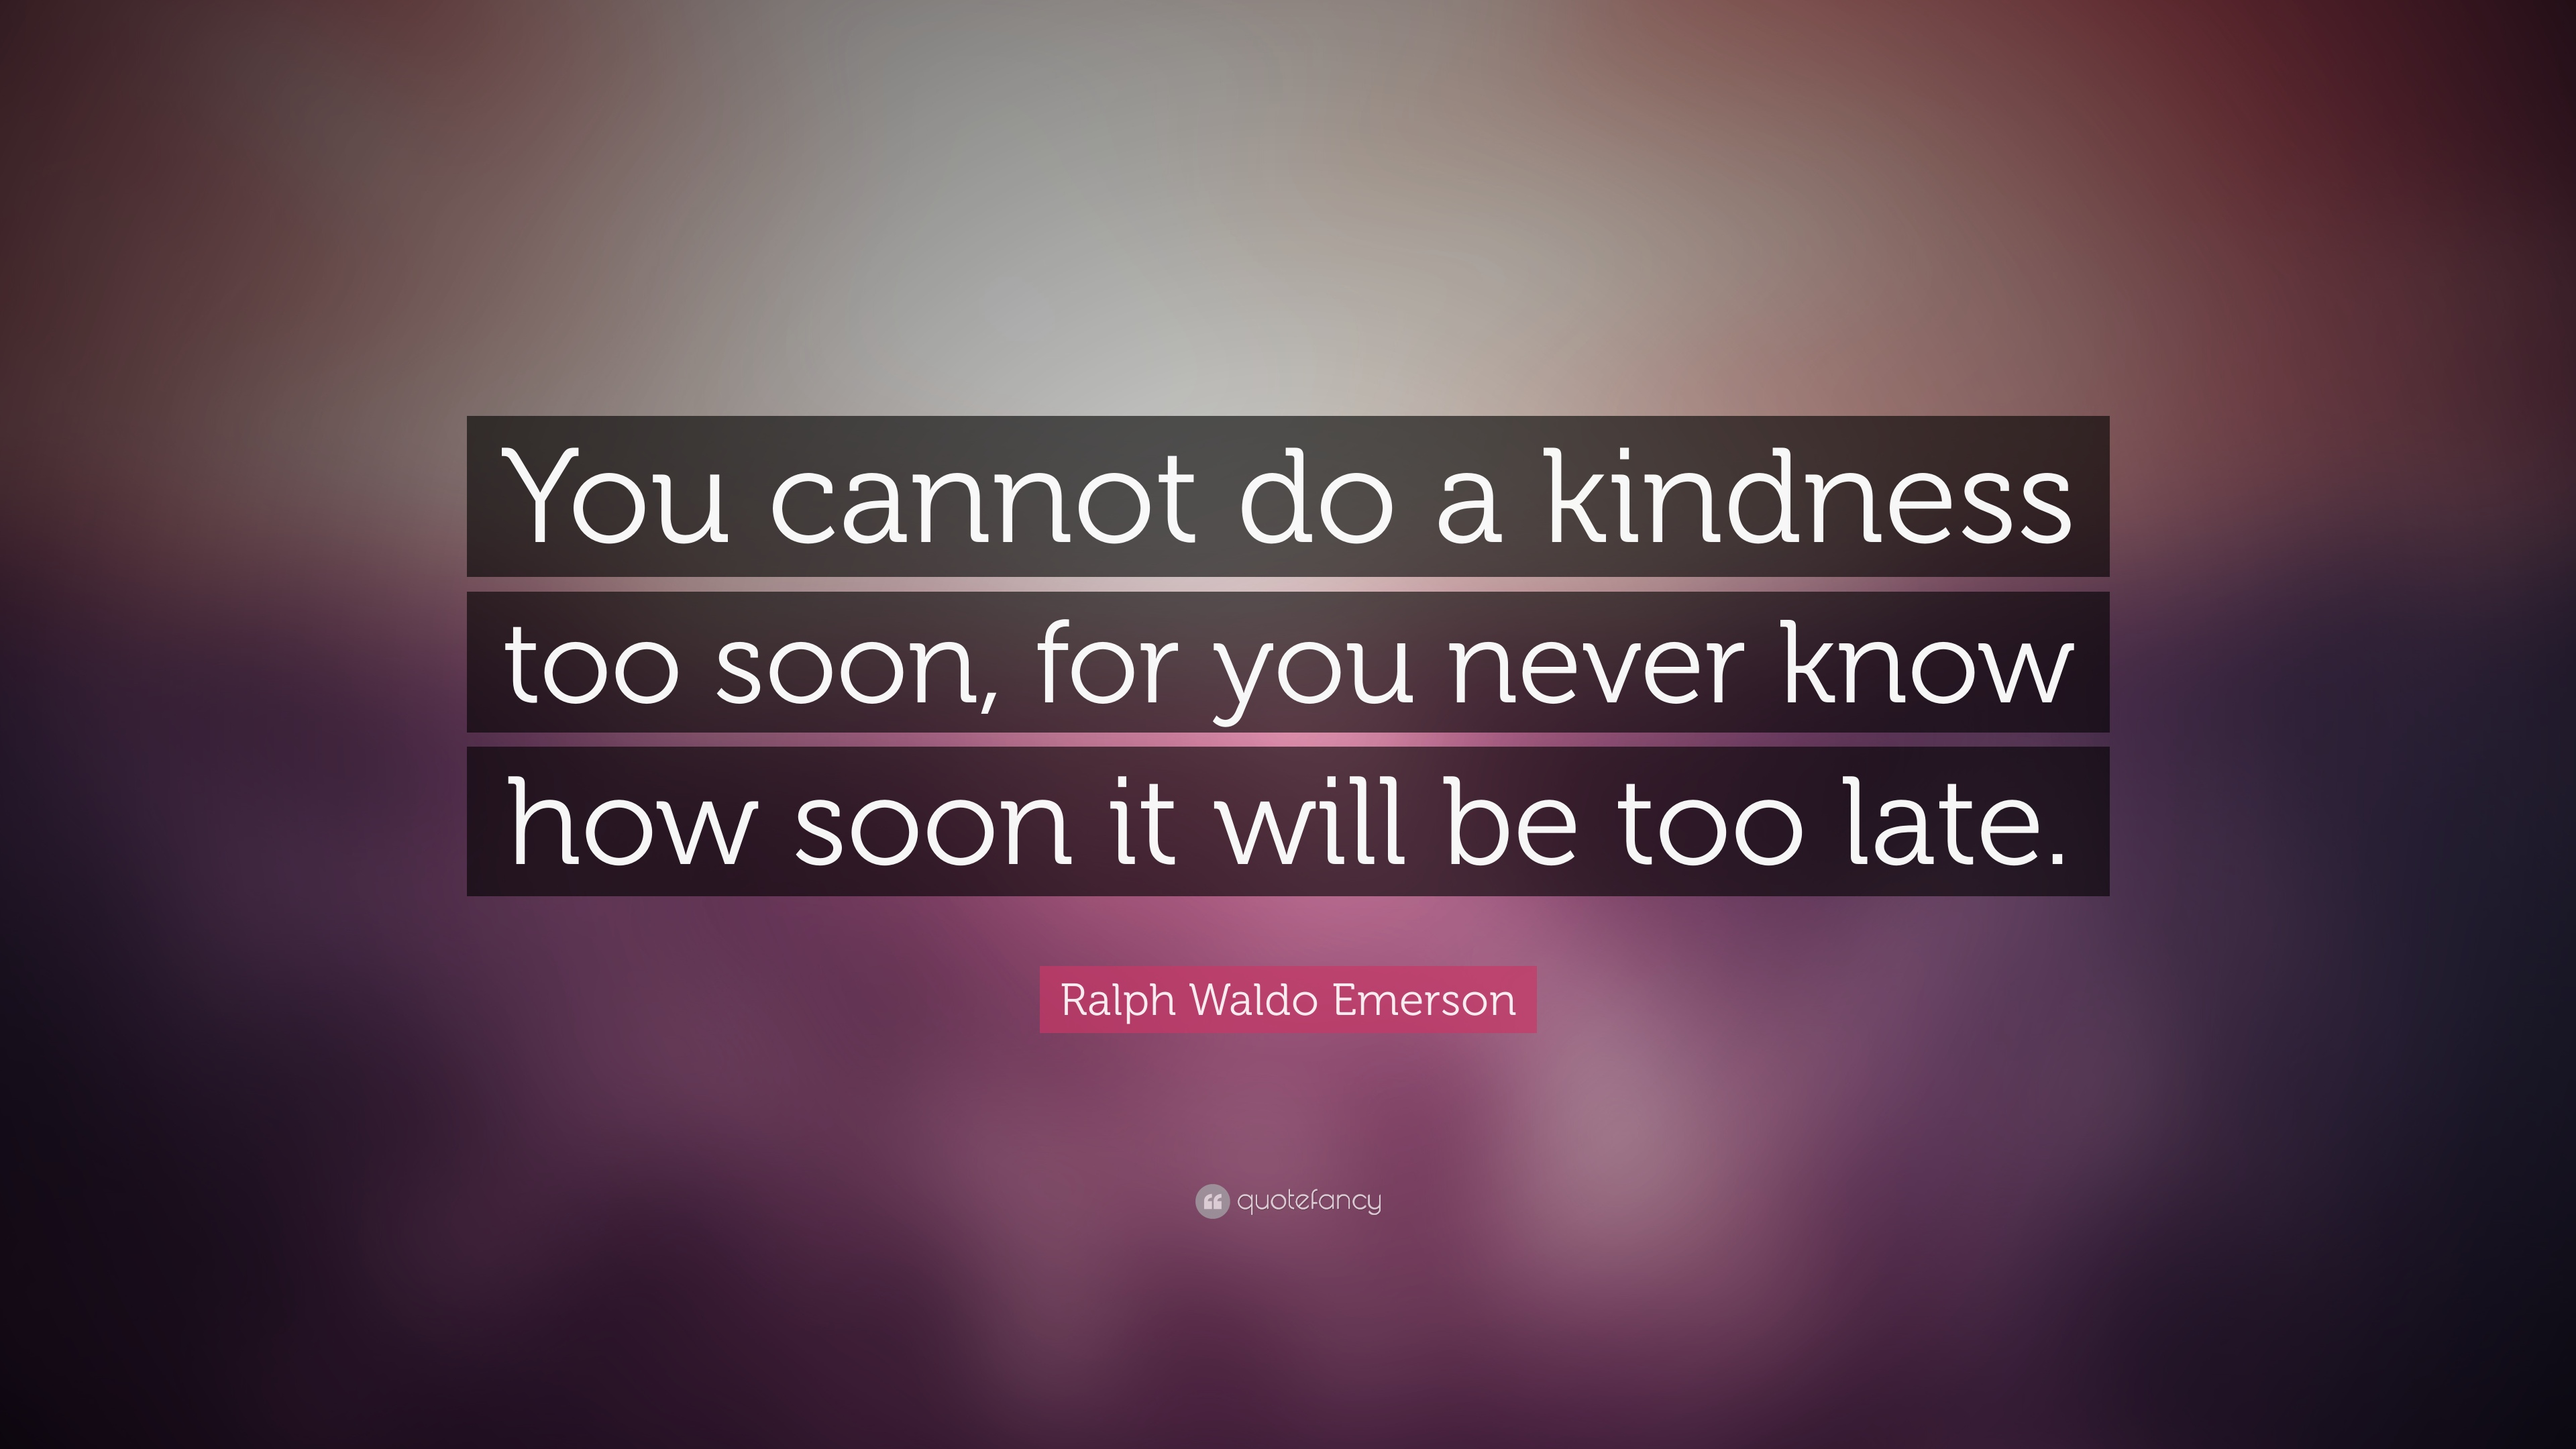 Ralph Waldo Emerson Quote You Cannot Do A Kindness Too Soon For